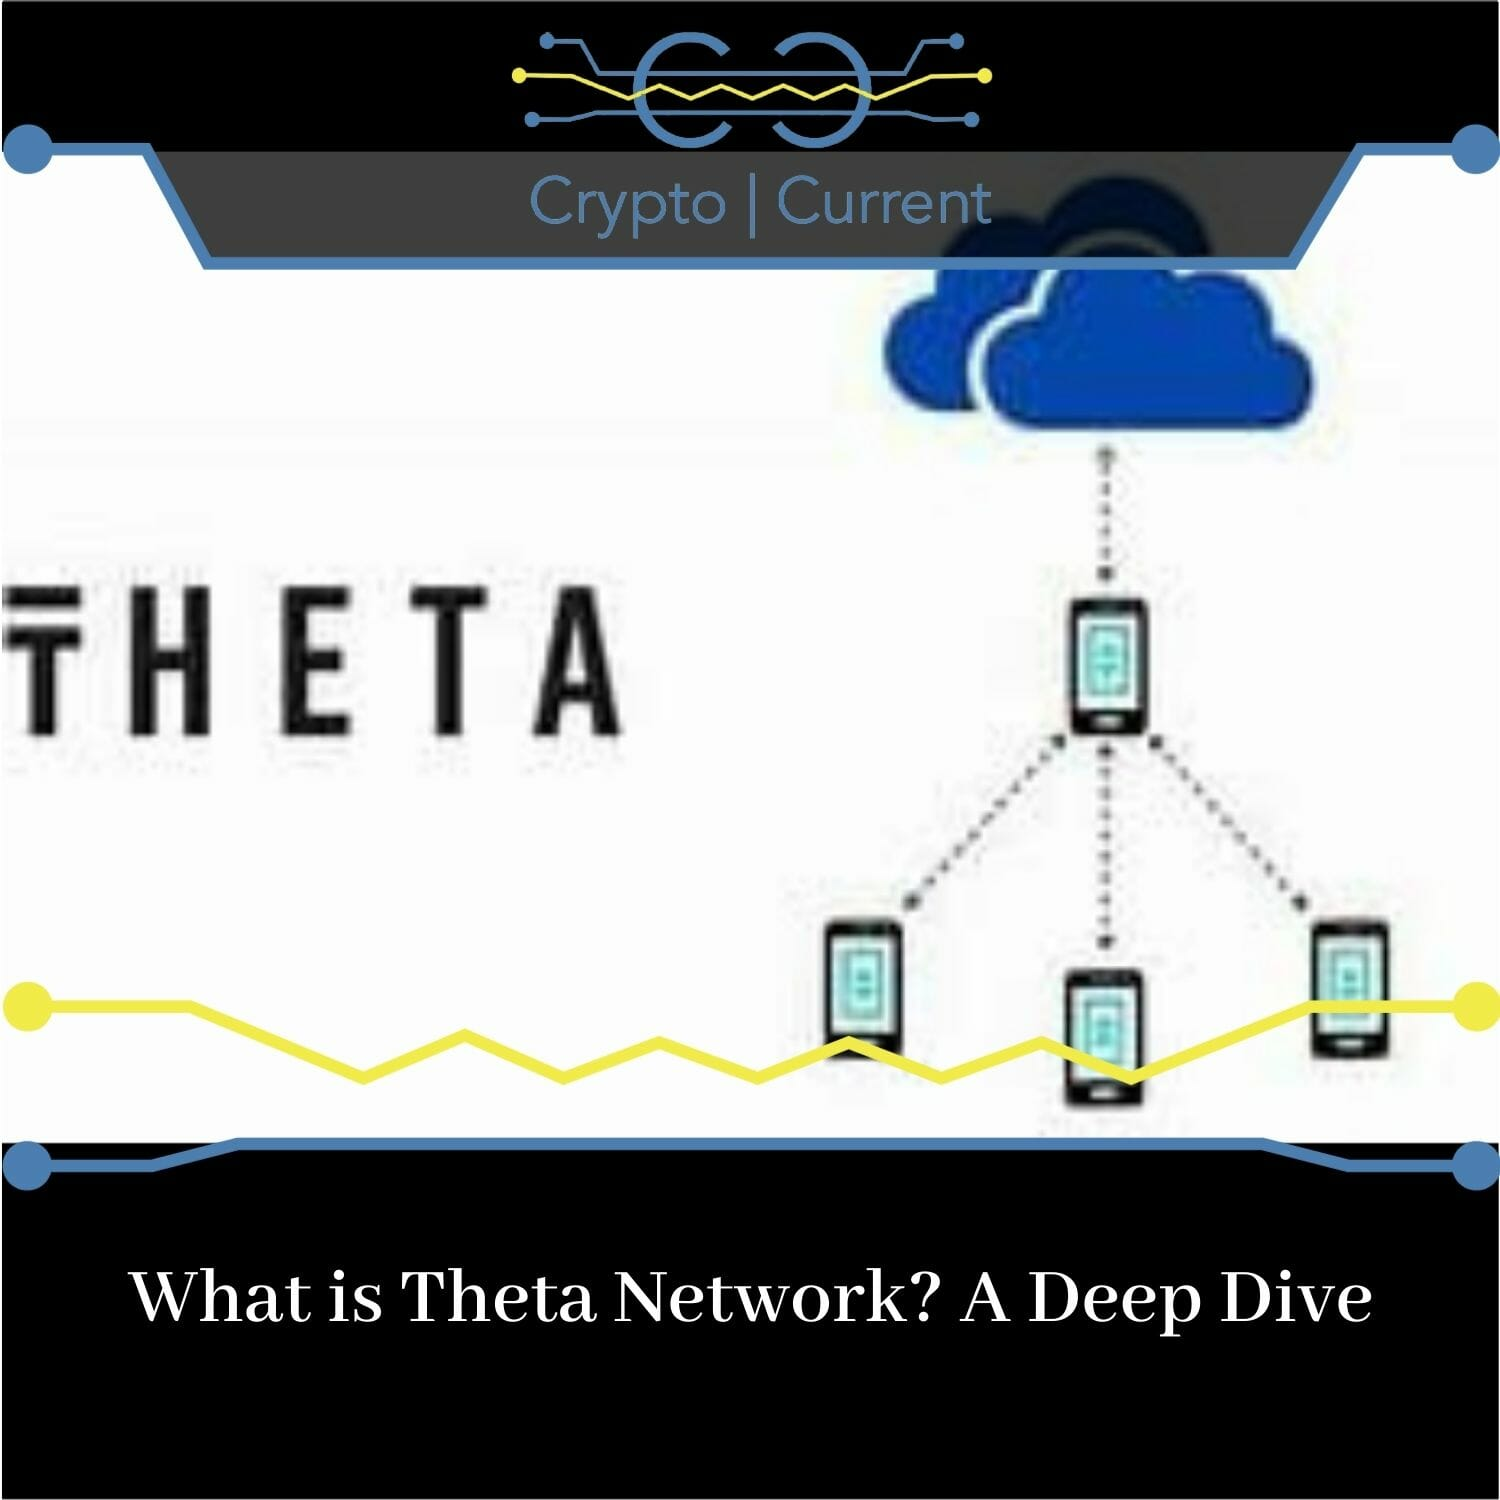 What is Theta Network? A Deep Dive